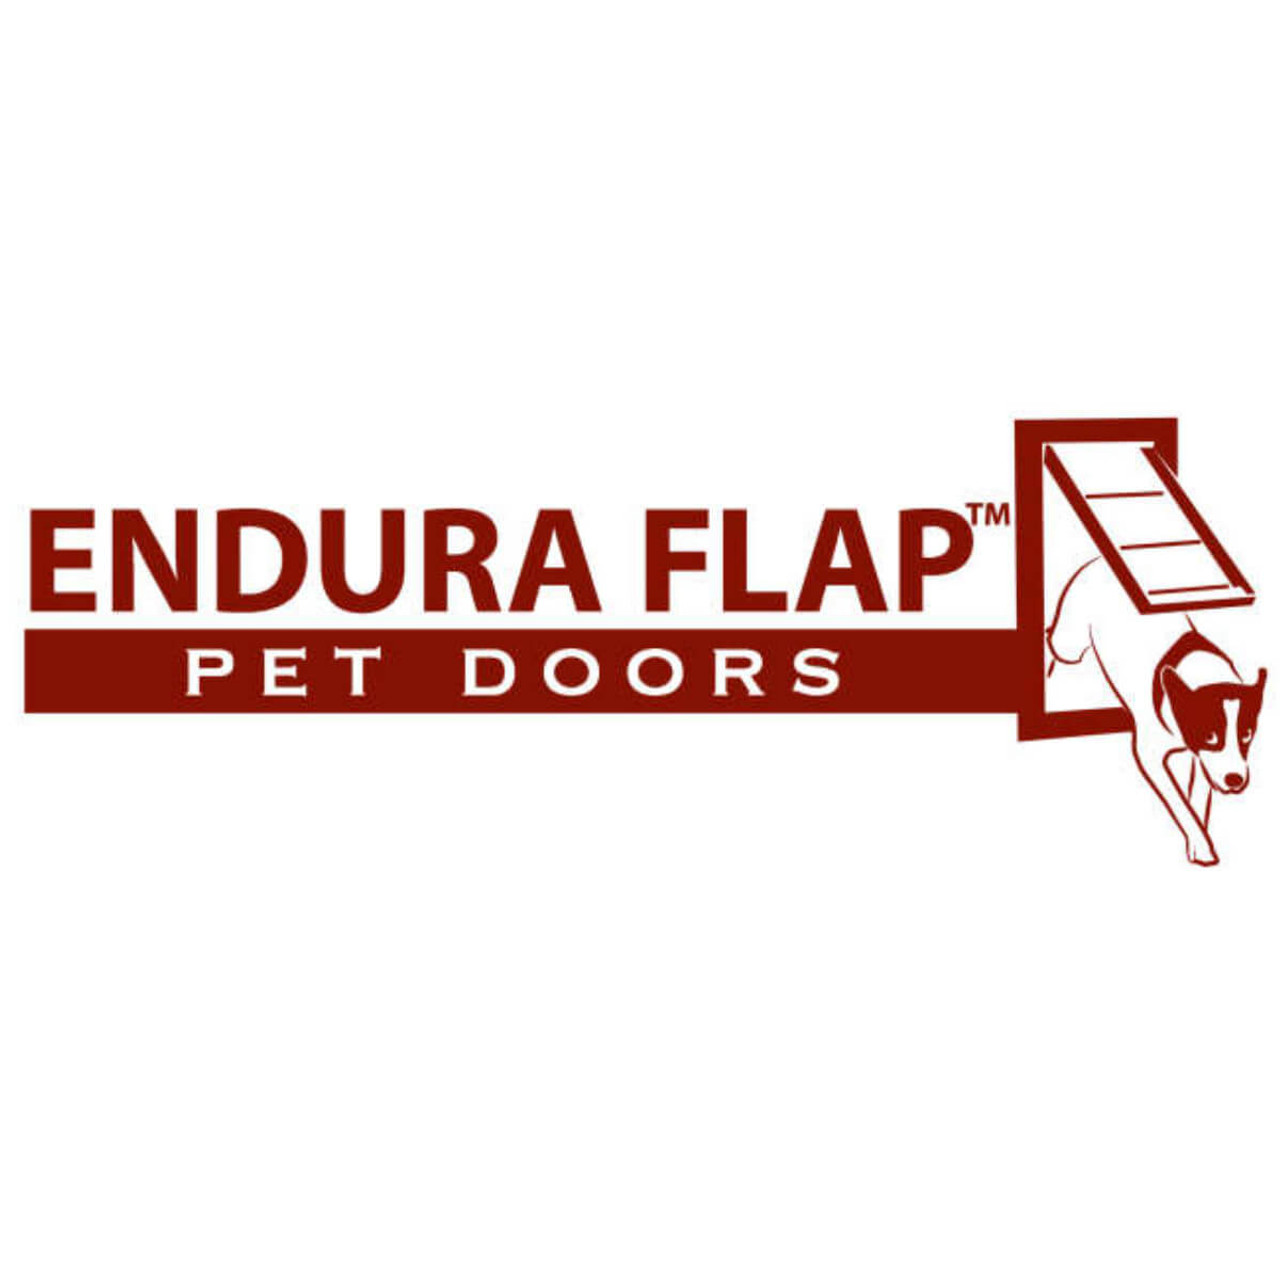 Endura Flap pet doors are some of the best out there Pet Door Store is proud to sell this product